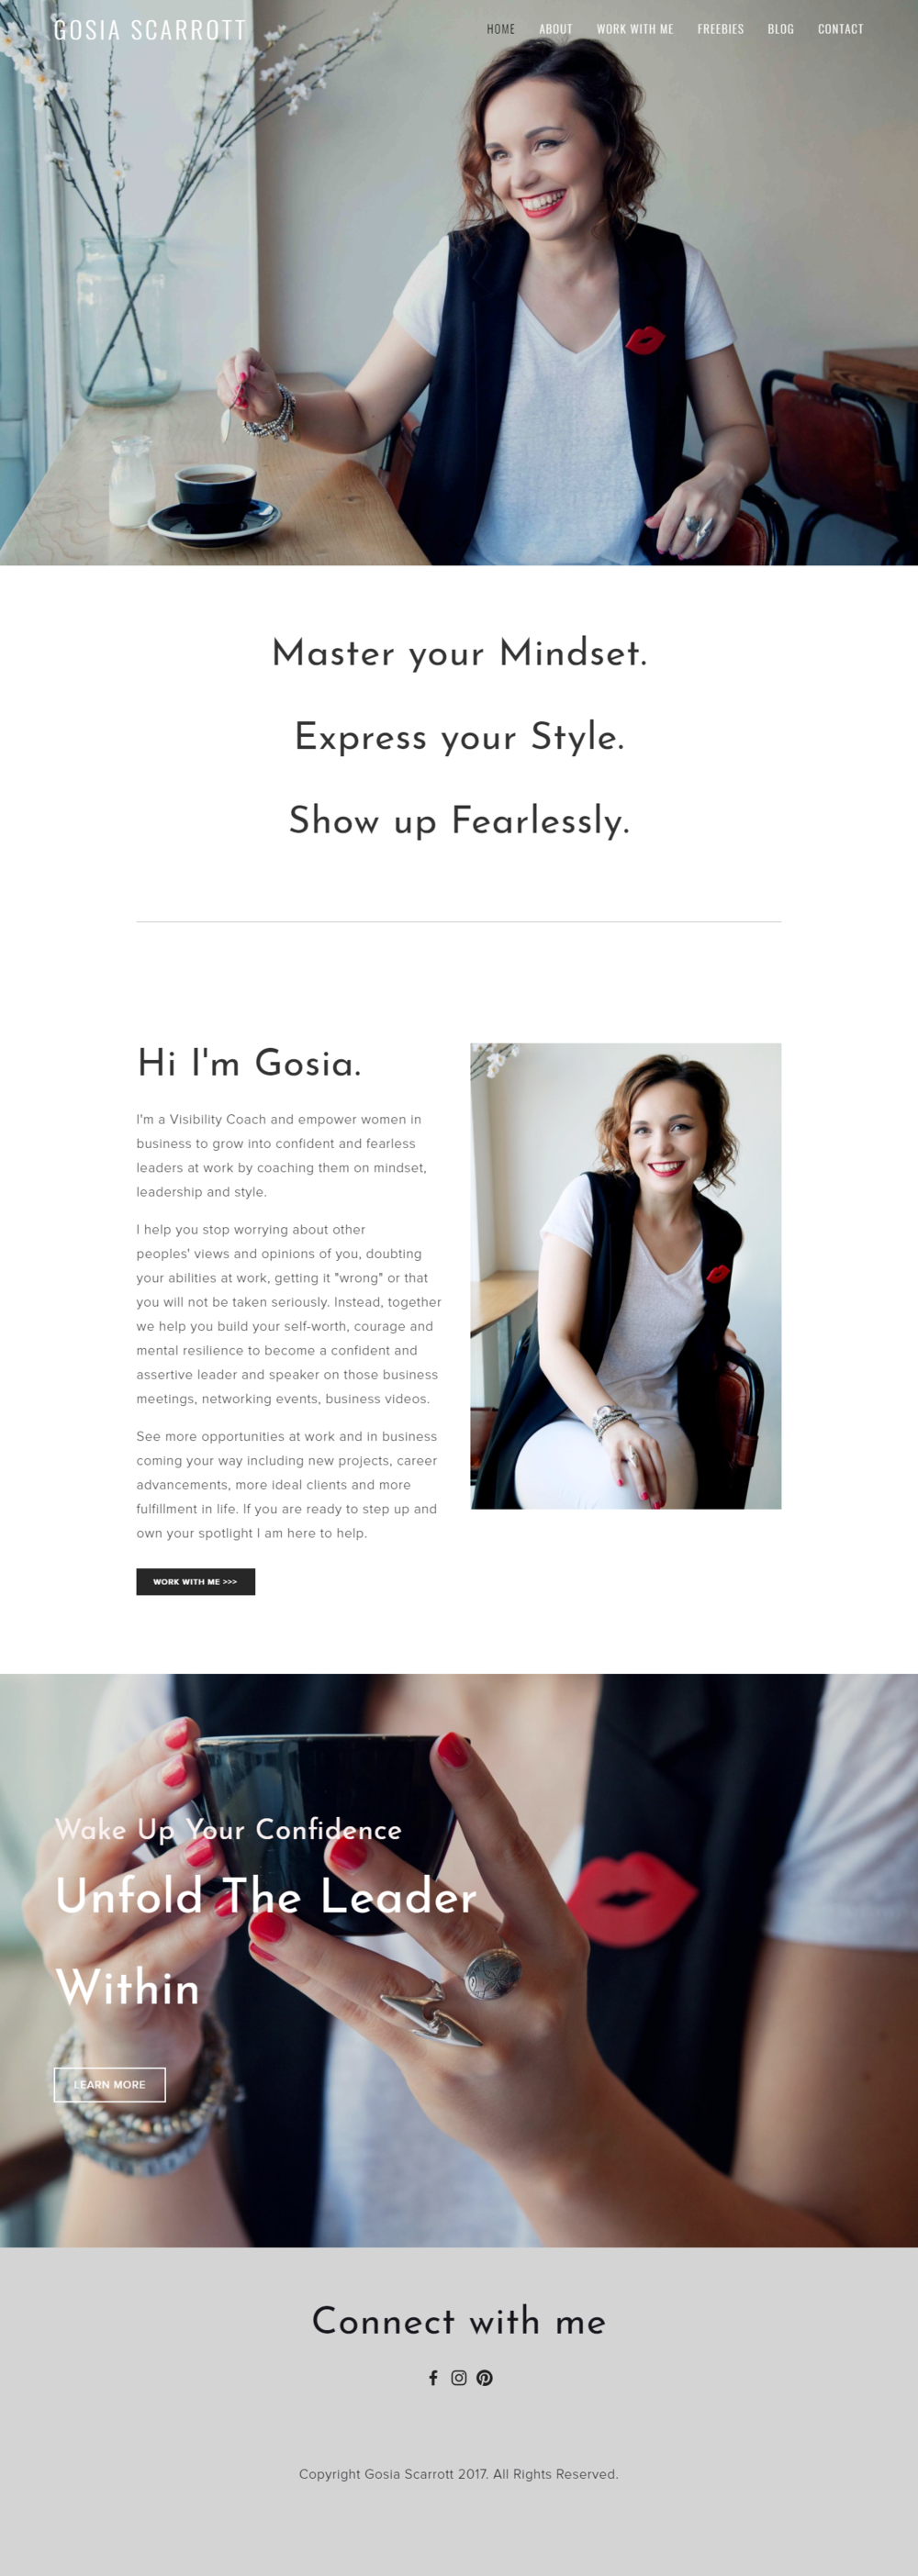 Web Design in Bristol for Gosia Scarrott by Visuable